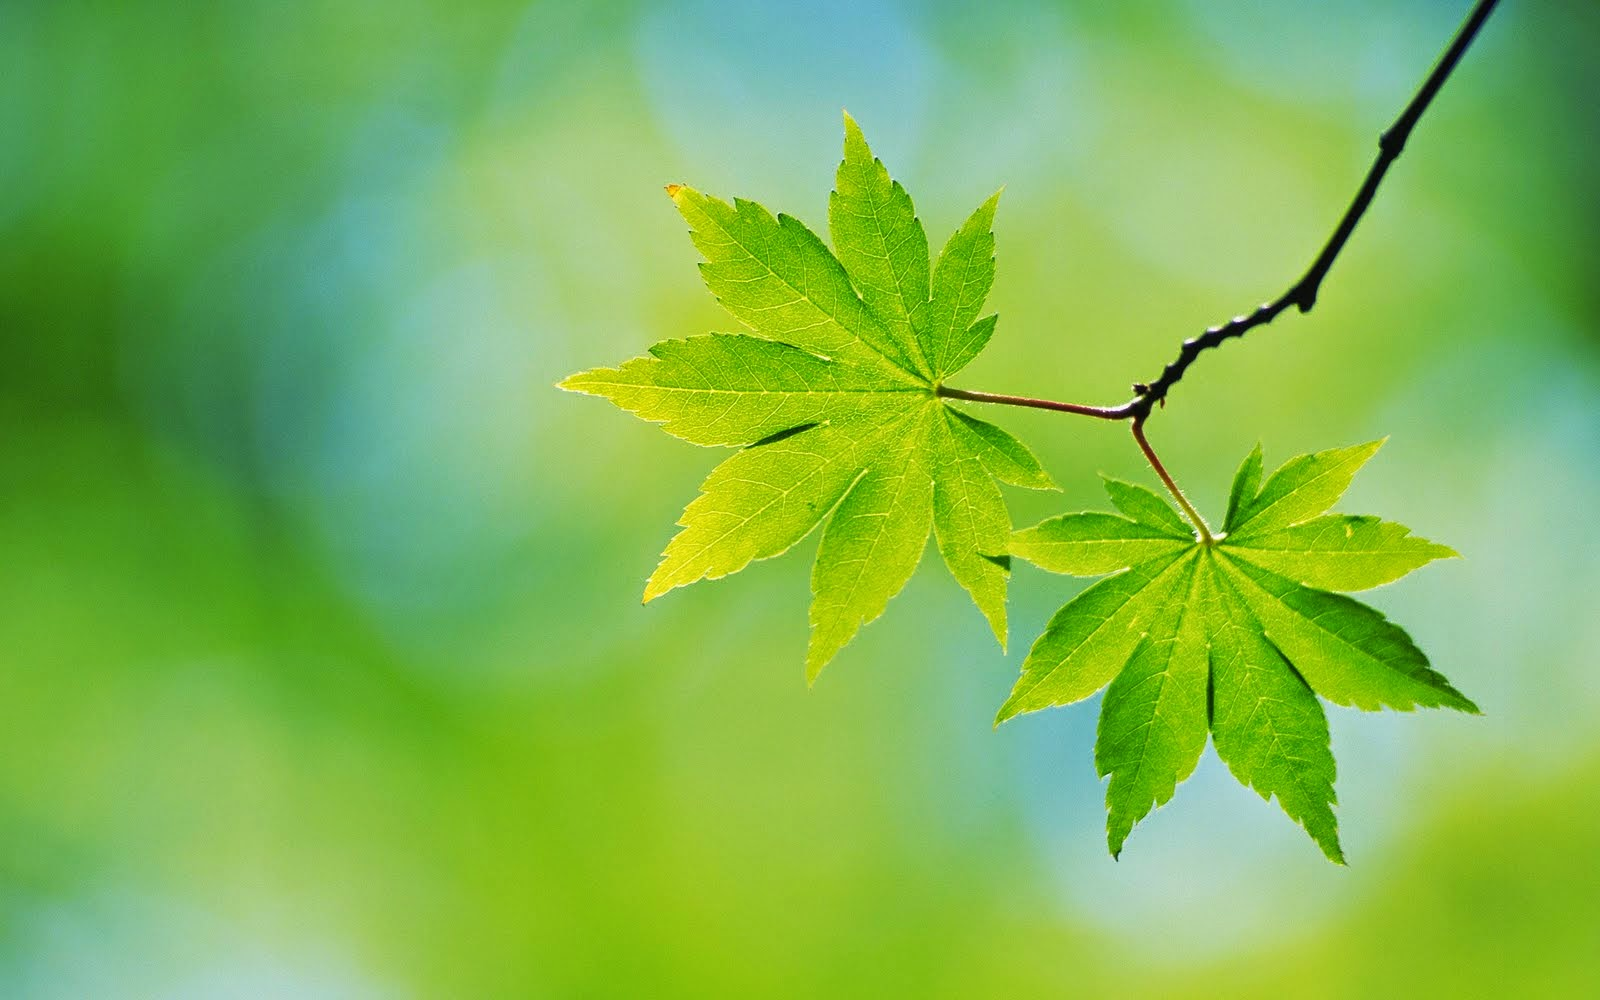 Wallpapers For Pc Nature Leaf HD Wallpapers PC